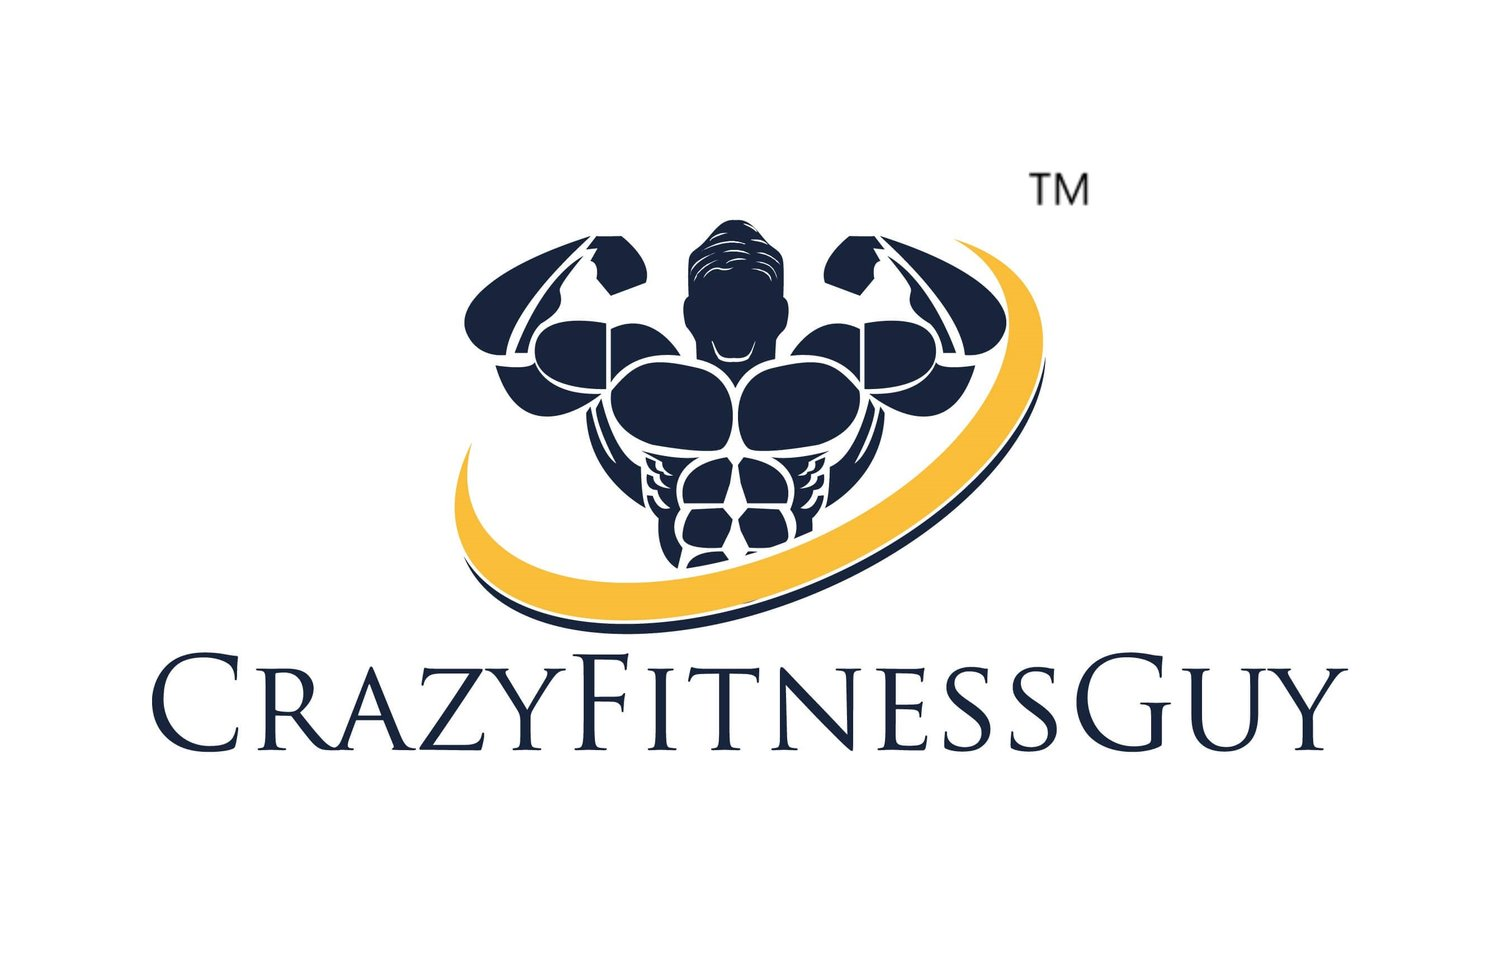 CrazyFitnessGuy: Fitness, Nutrition, Holistic Health